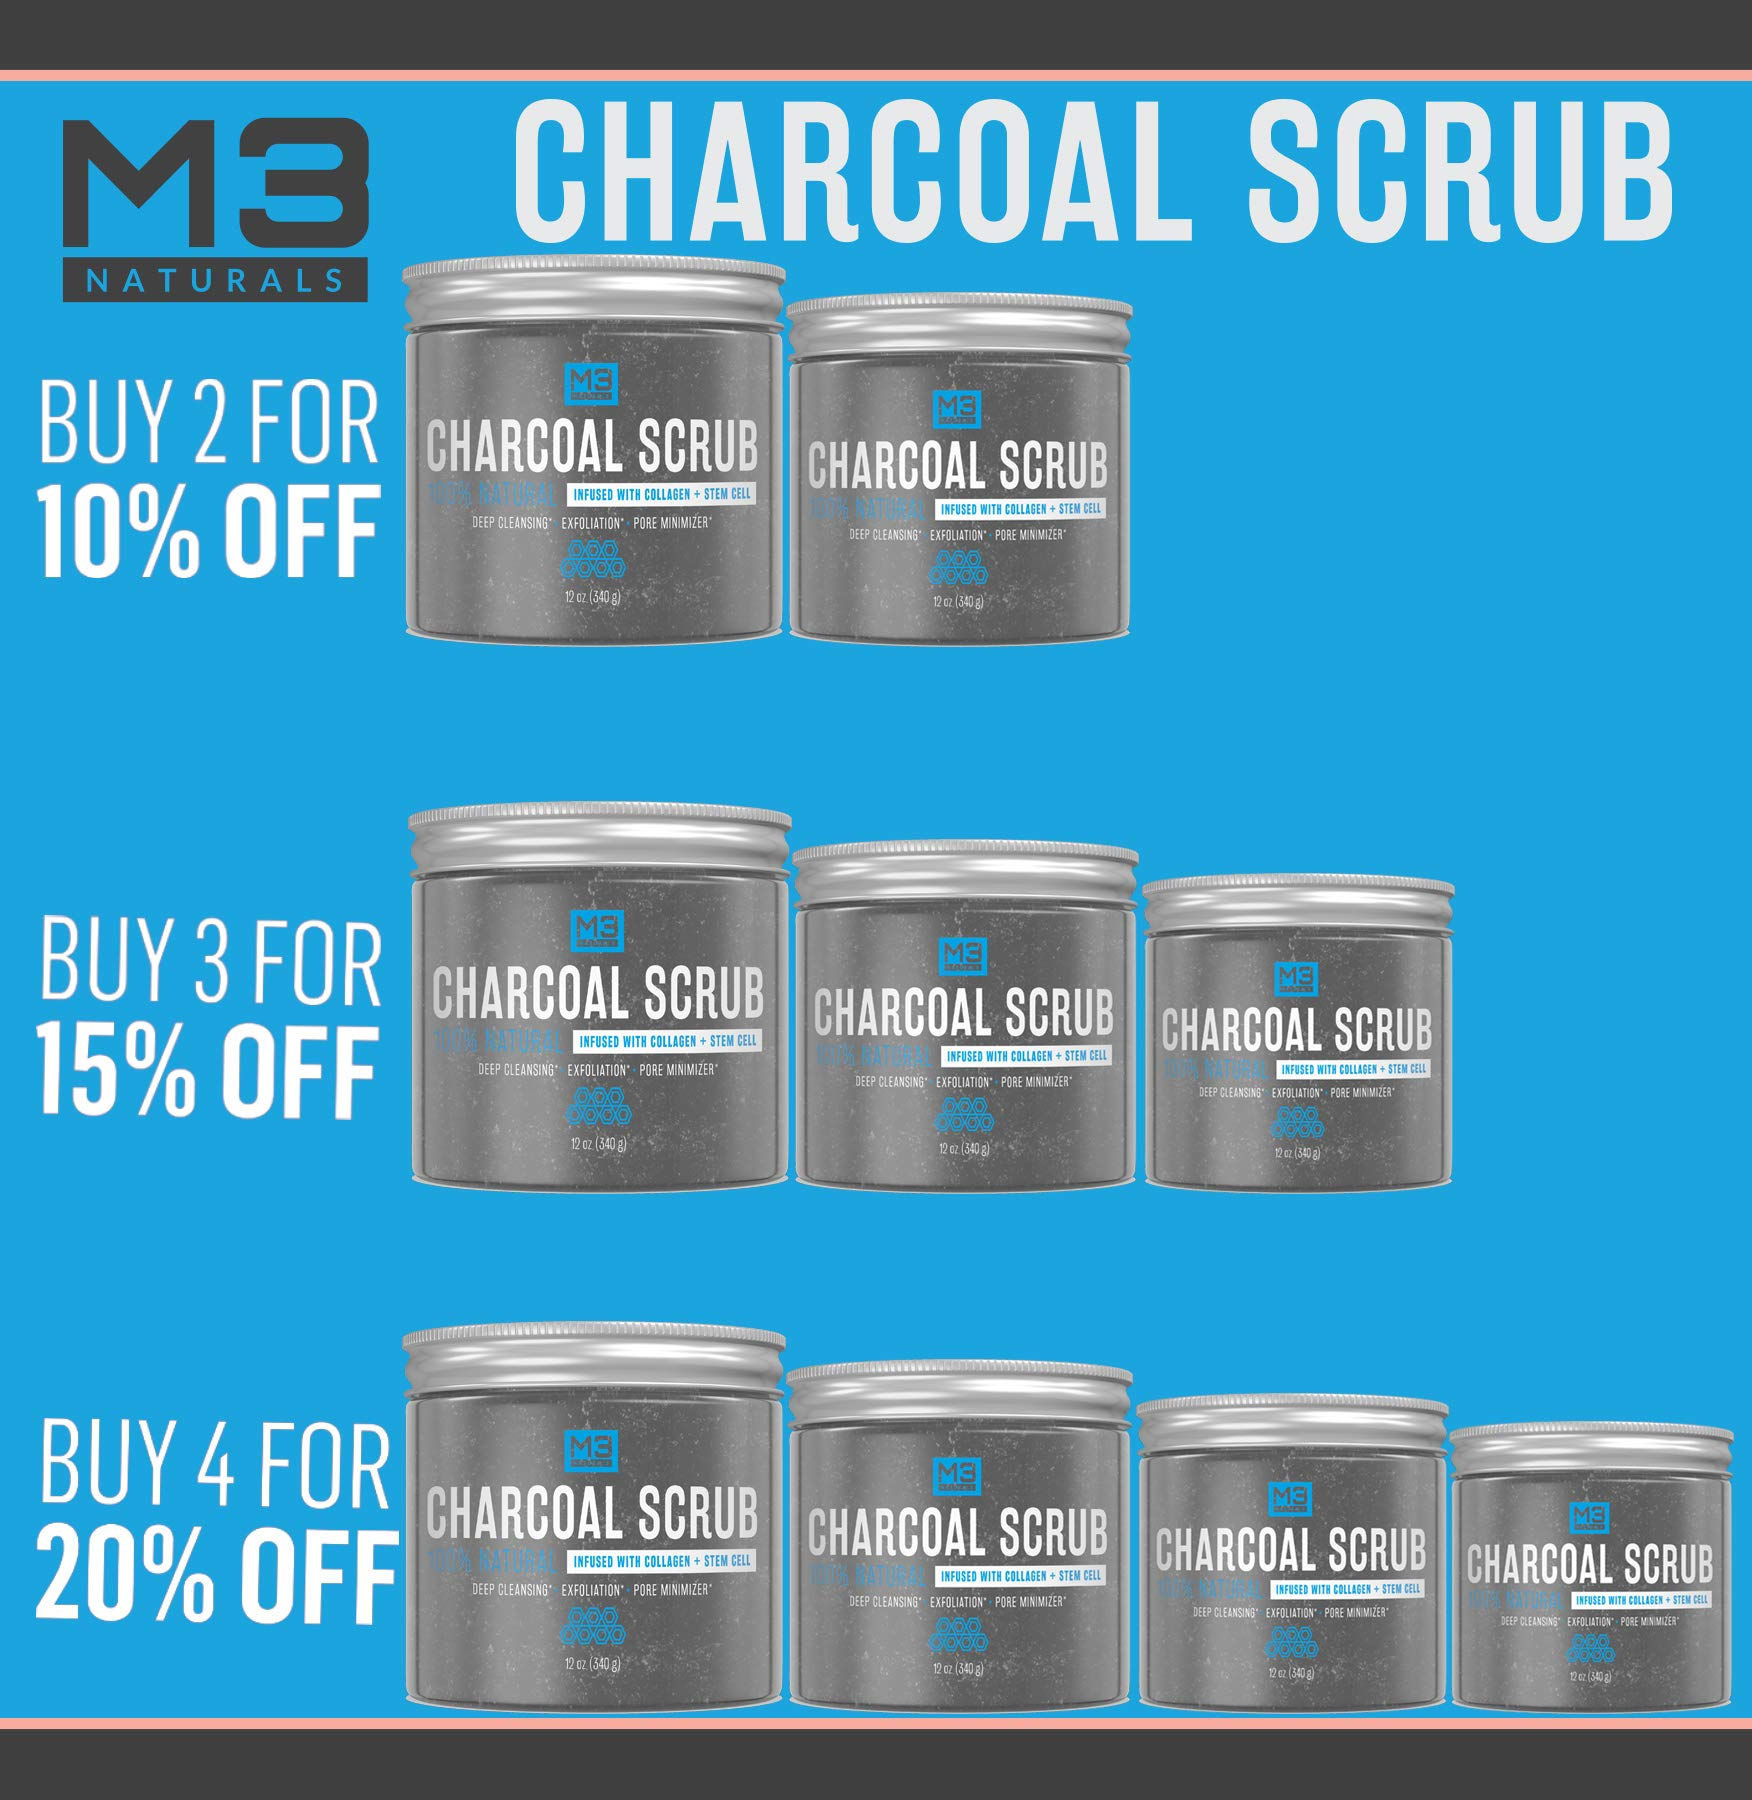 M3 Naturals Activated Charcoal Scrub Infused with Collagen & Stem Cell All Natural Body & Face Skin Care Exfoliating Blackheads Acne Scars Pore Minimizer Reduces Wrinkles Anti Cellulite12 OZ by M3 Naturals (Image #6)